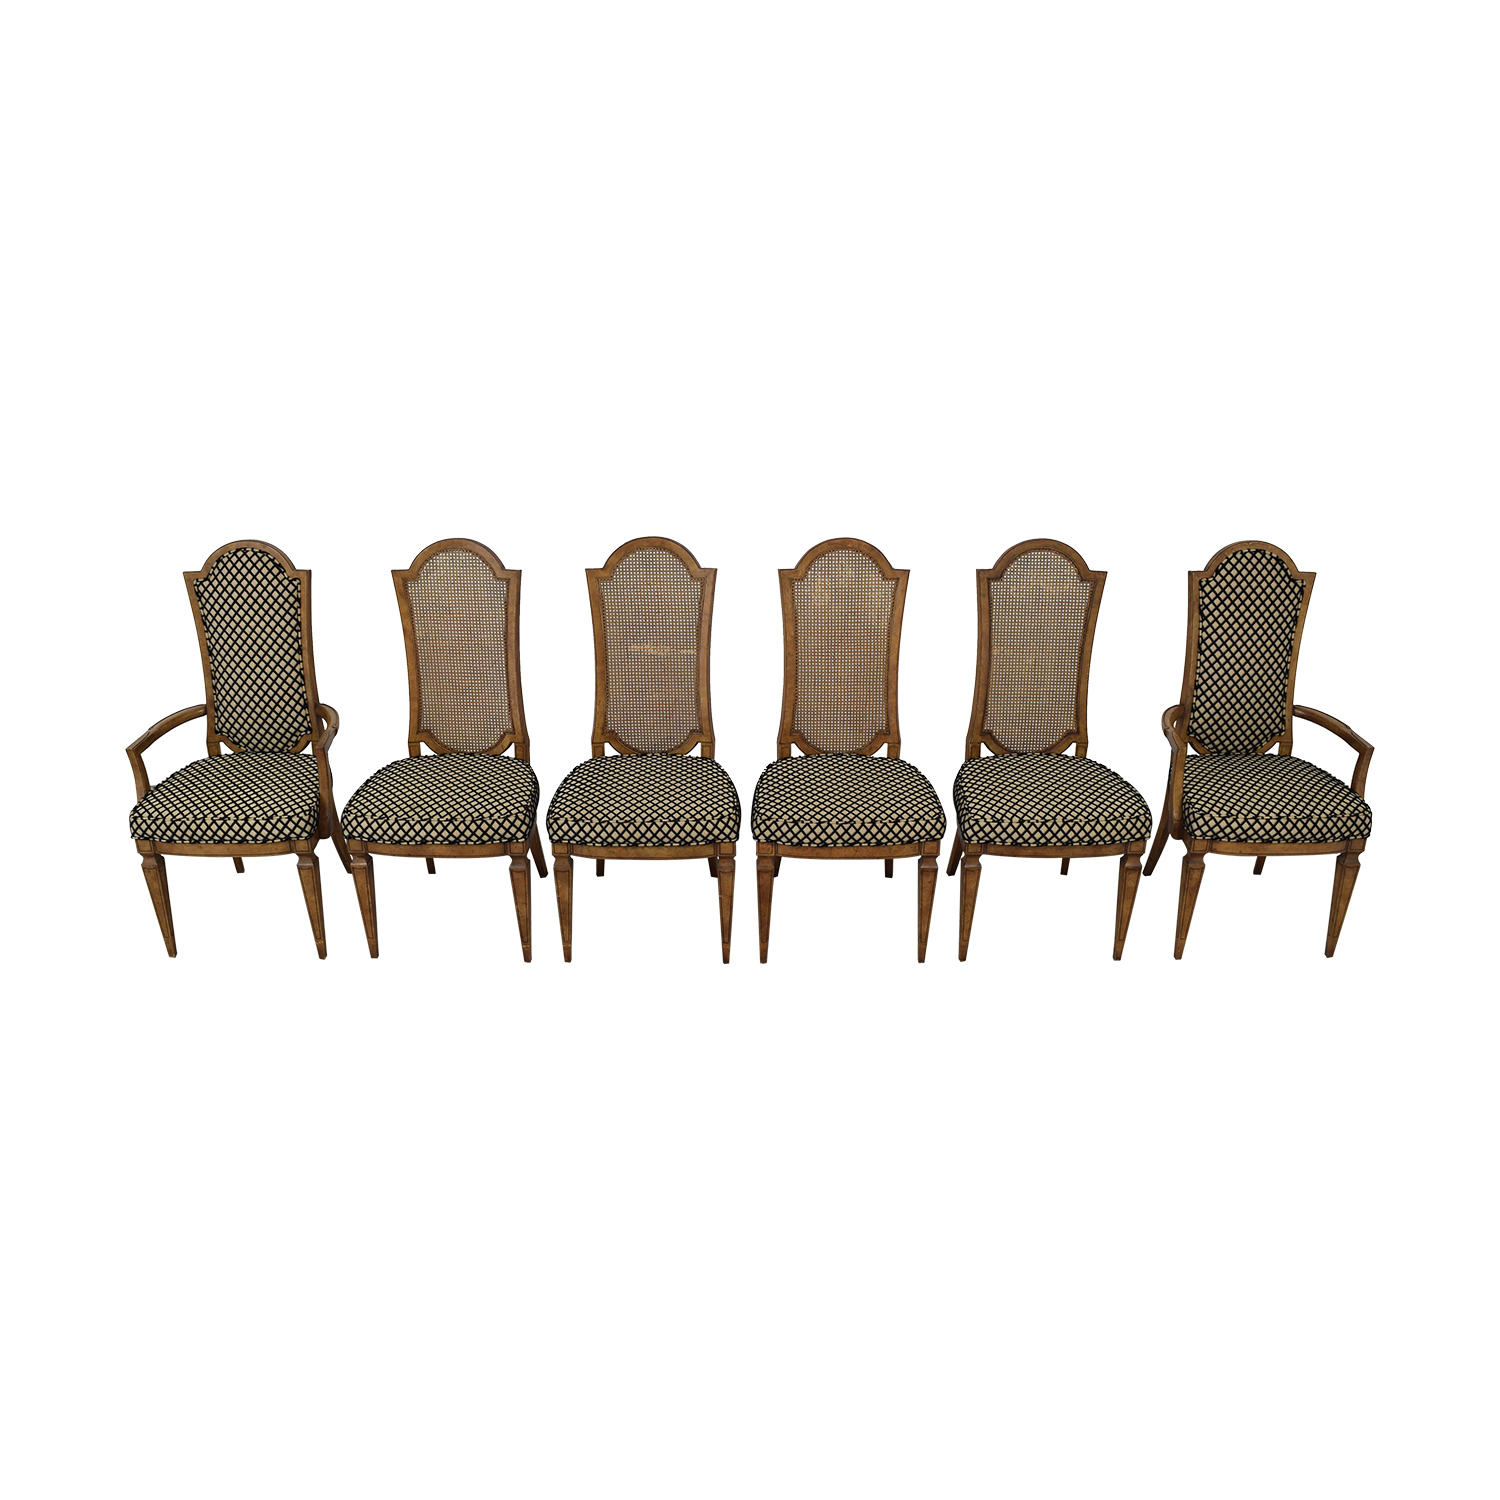 Mastercraft Furniture Mastercraft Furniture Patterned Dining Chairs price